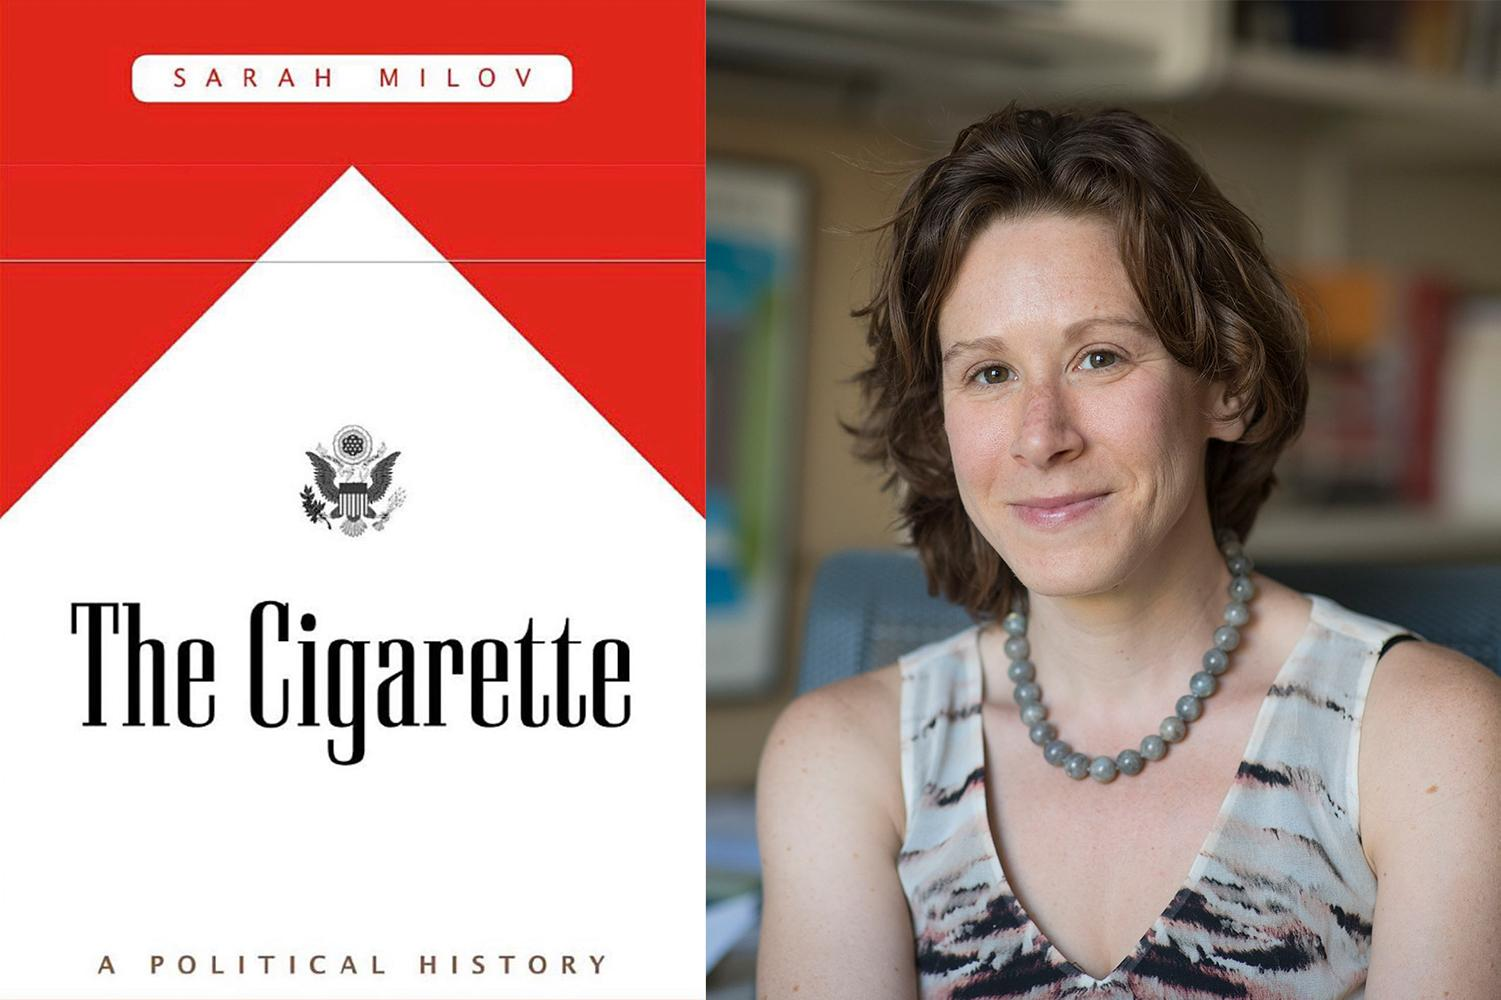 Sarah Milov, The Cigarette: A Political History